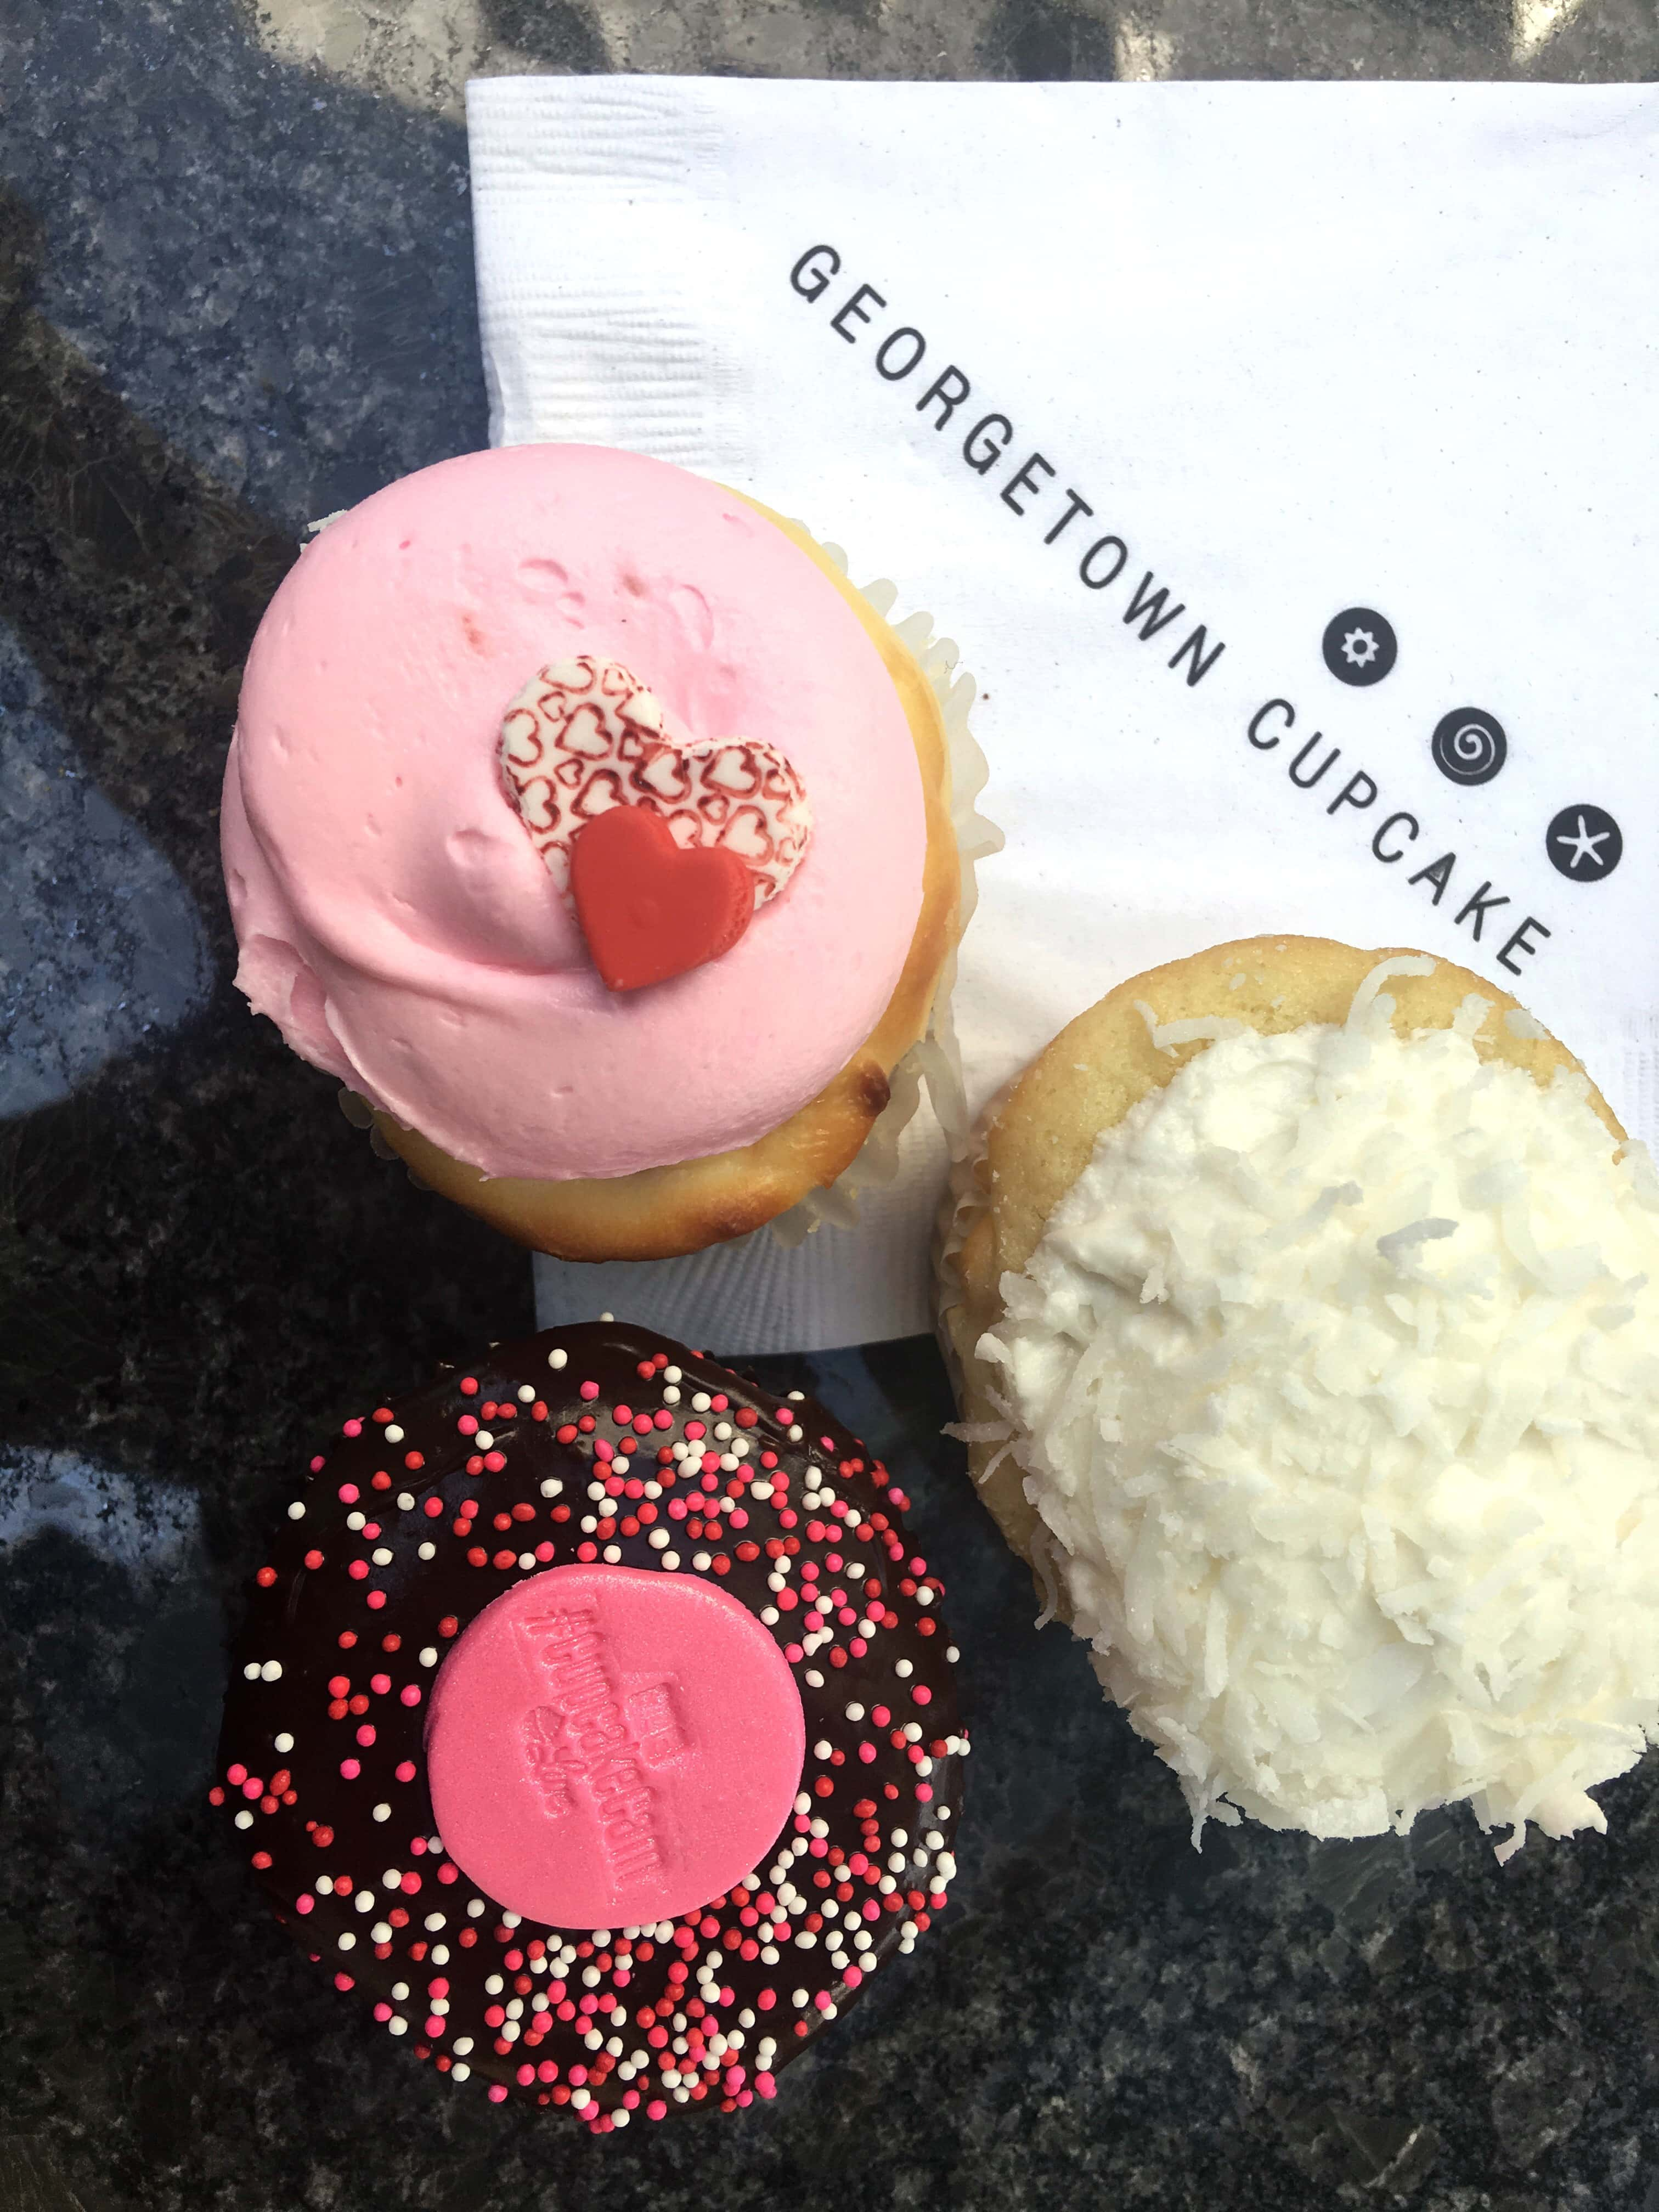 A collection of cupcakes from Georgetown Cupcake Shop in Los Angeles